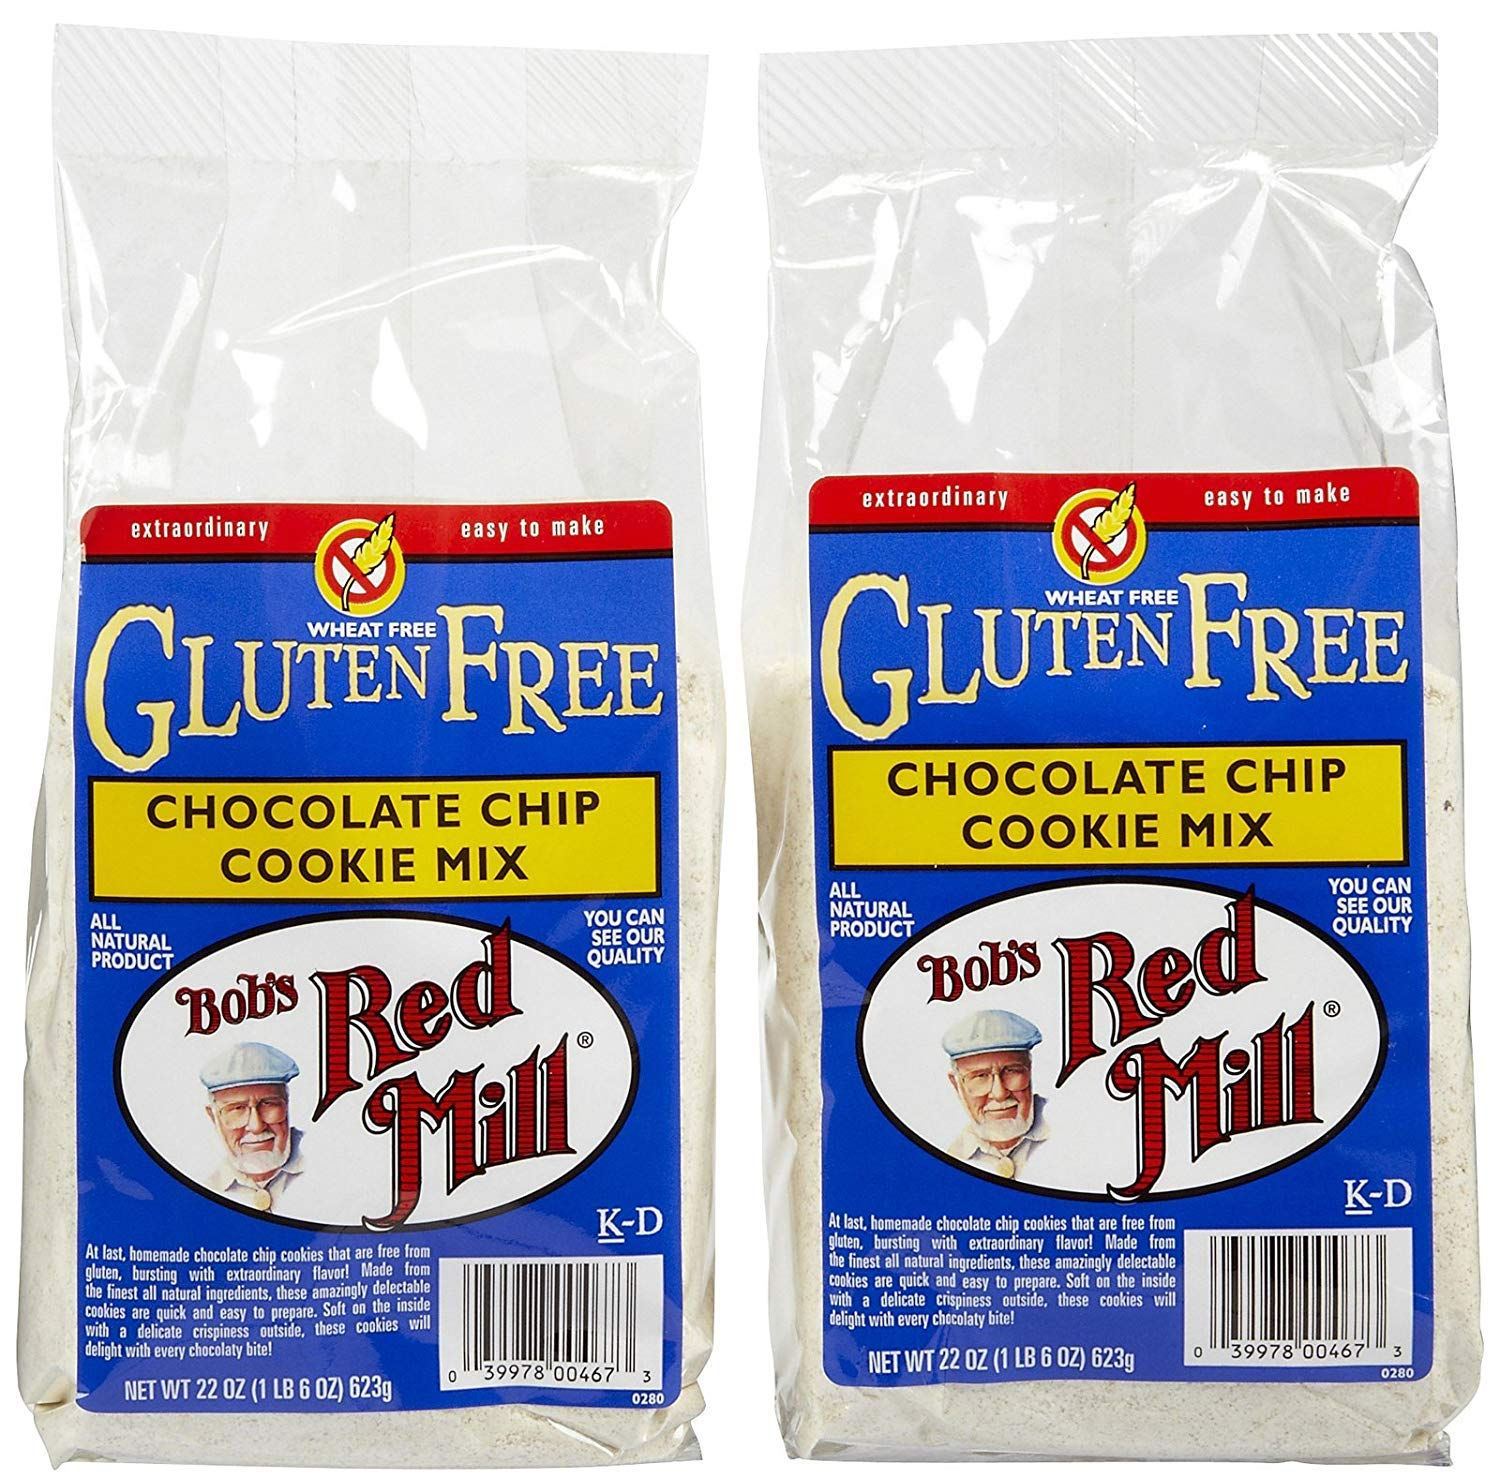 Bob's Red Mill Gluten Free Chocolate Chip Cookie Mix - 22 oz - 2 pk